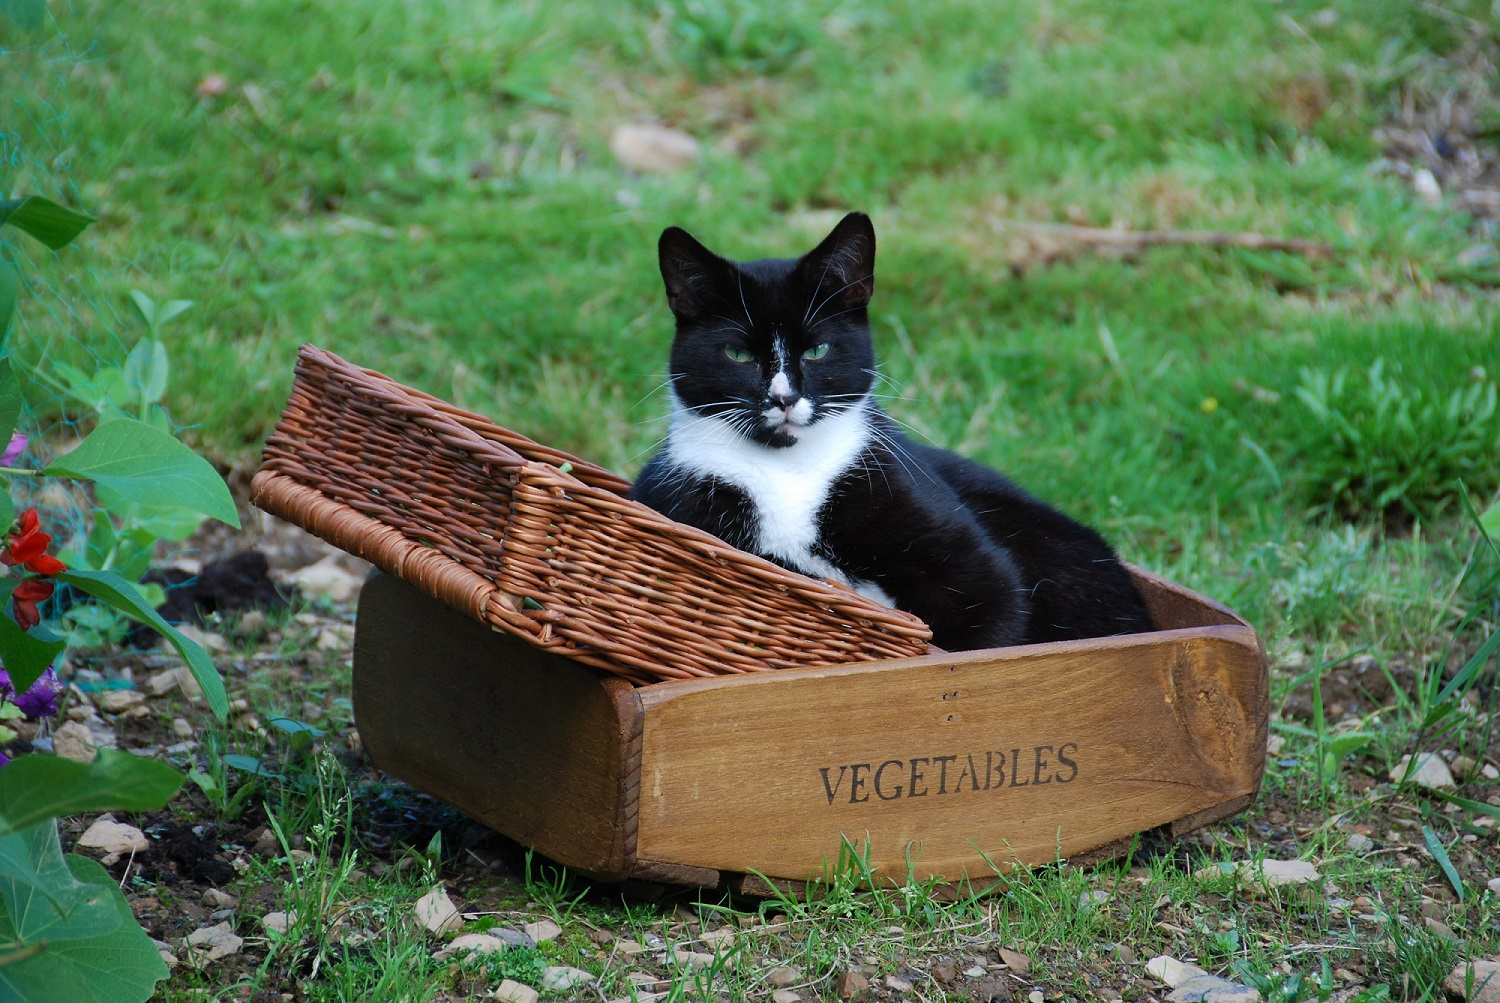 cat in a vegetable basket